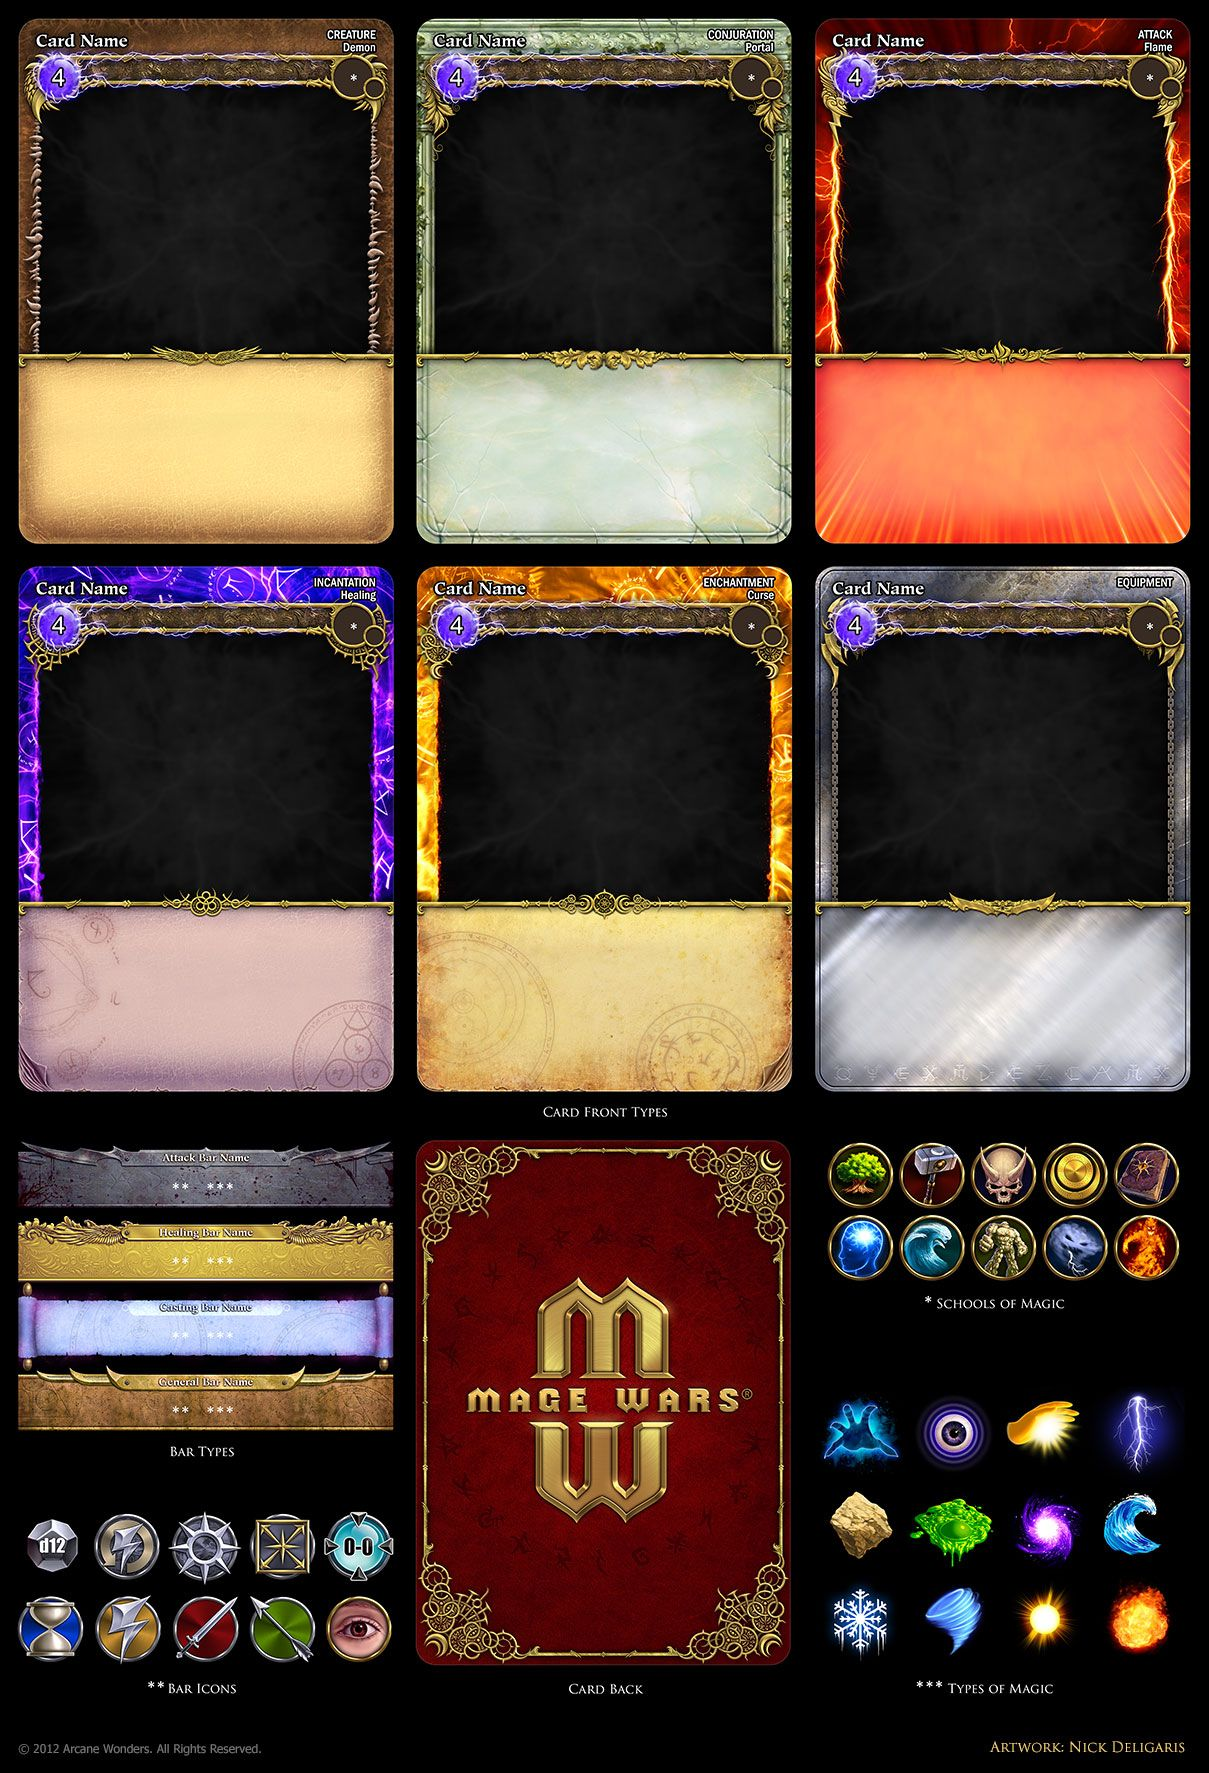 Mage Wars Card Assets By Deligaris On Deviantart Game Card Design Trading Card Template Card Template